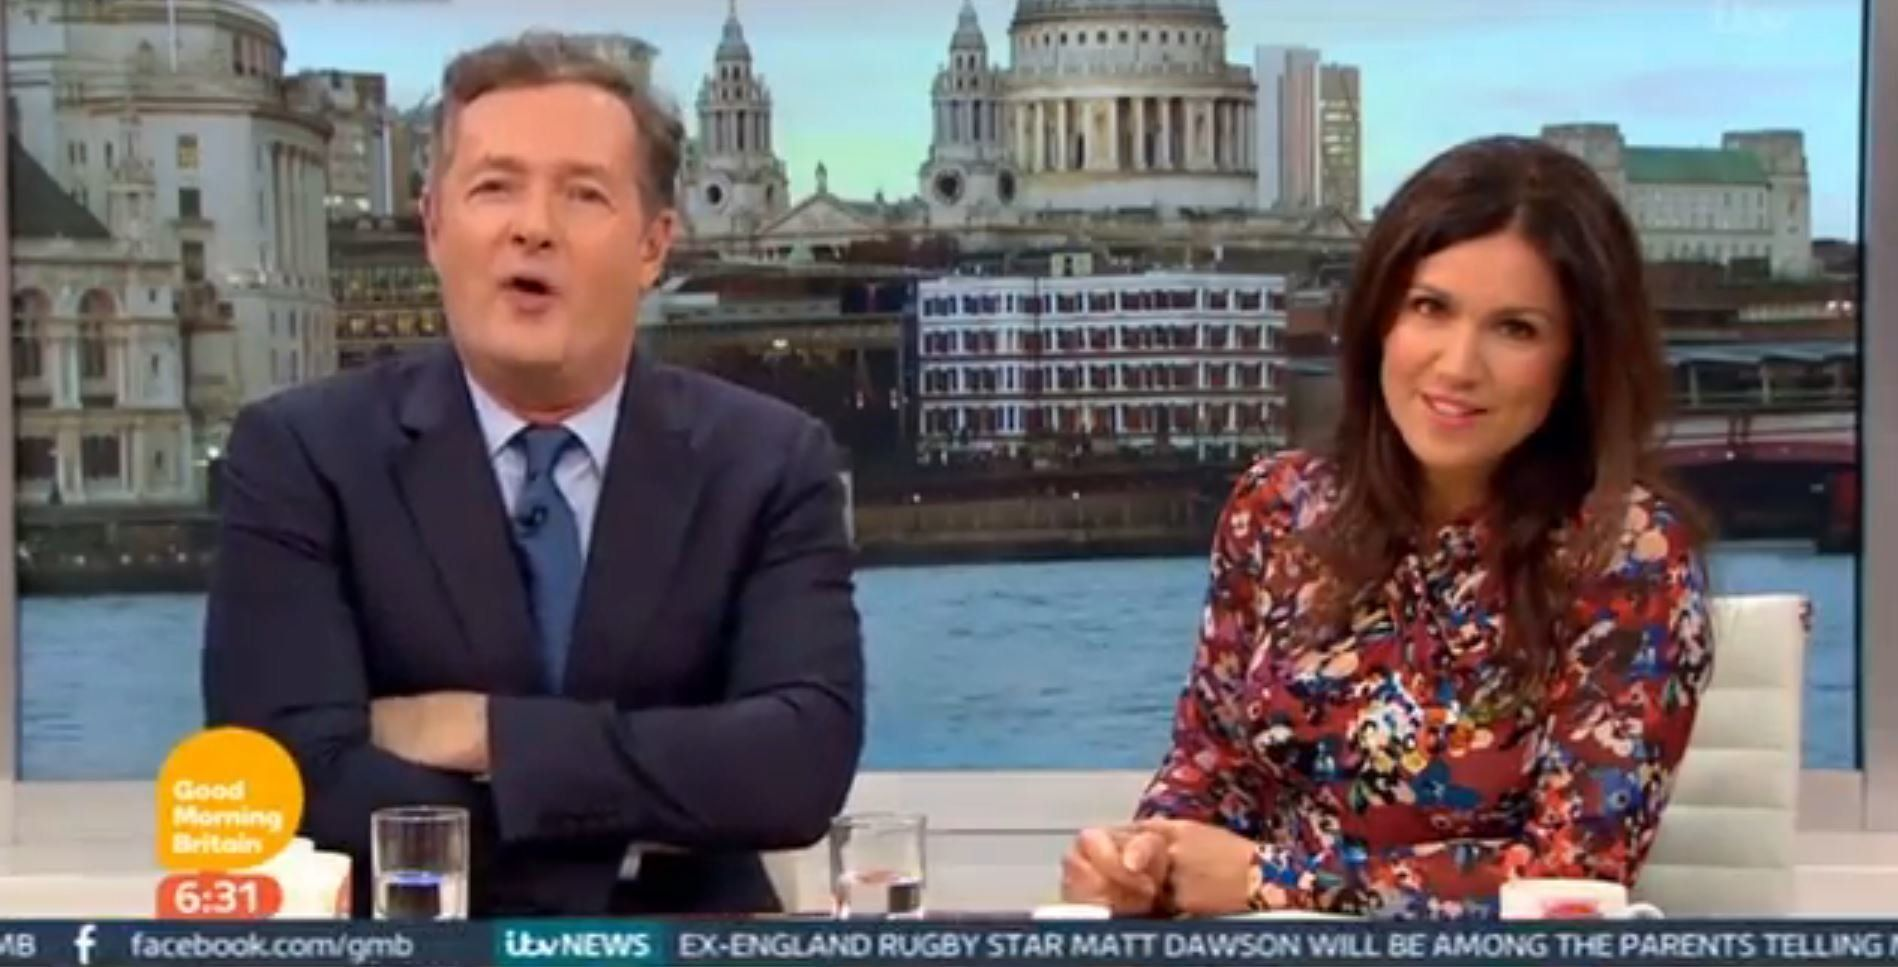 Susanna Reid, looking as gleeful as ever to be seated next to Piers